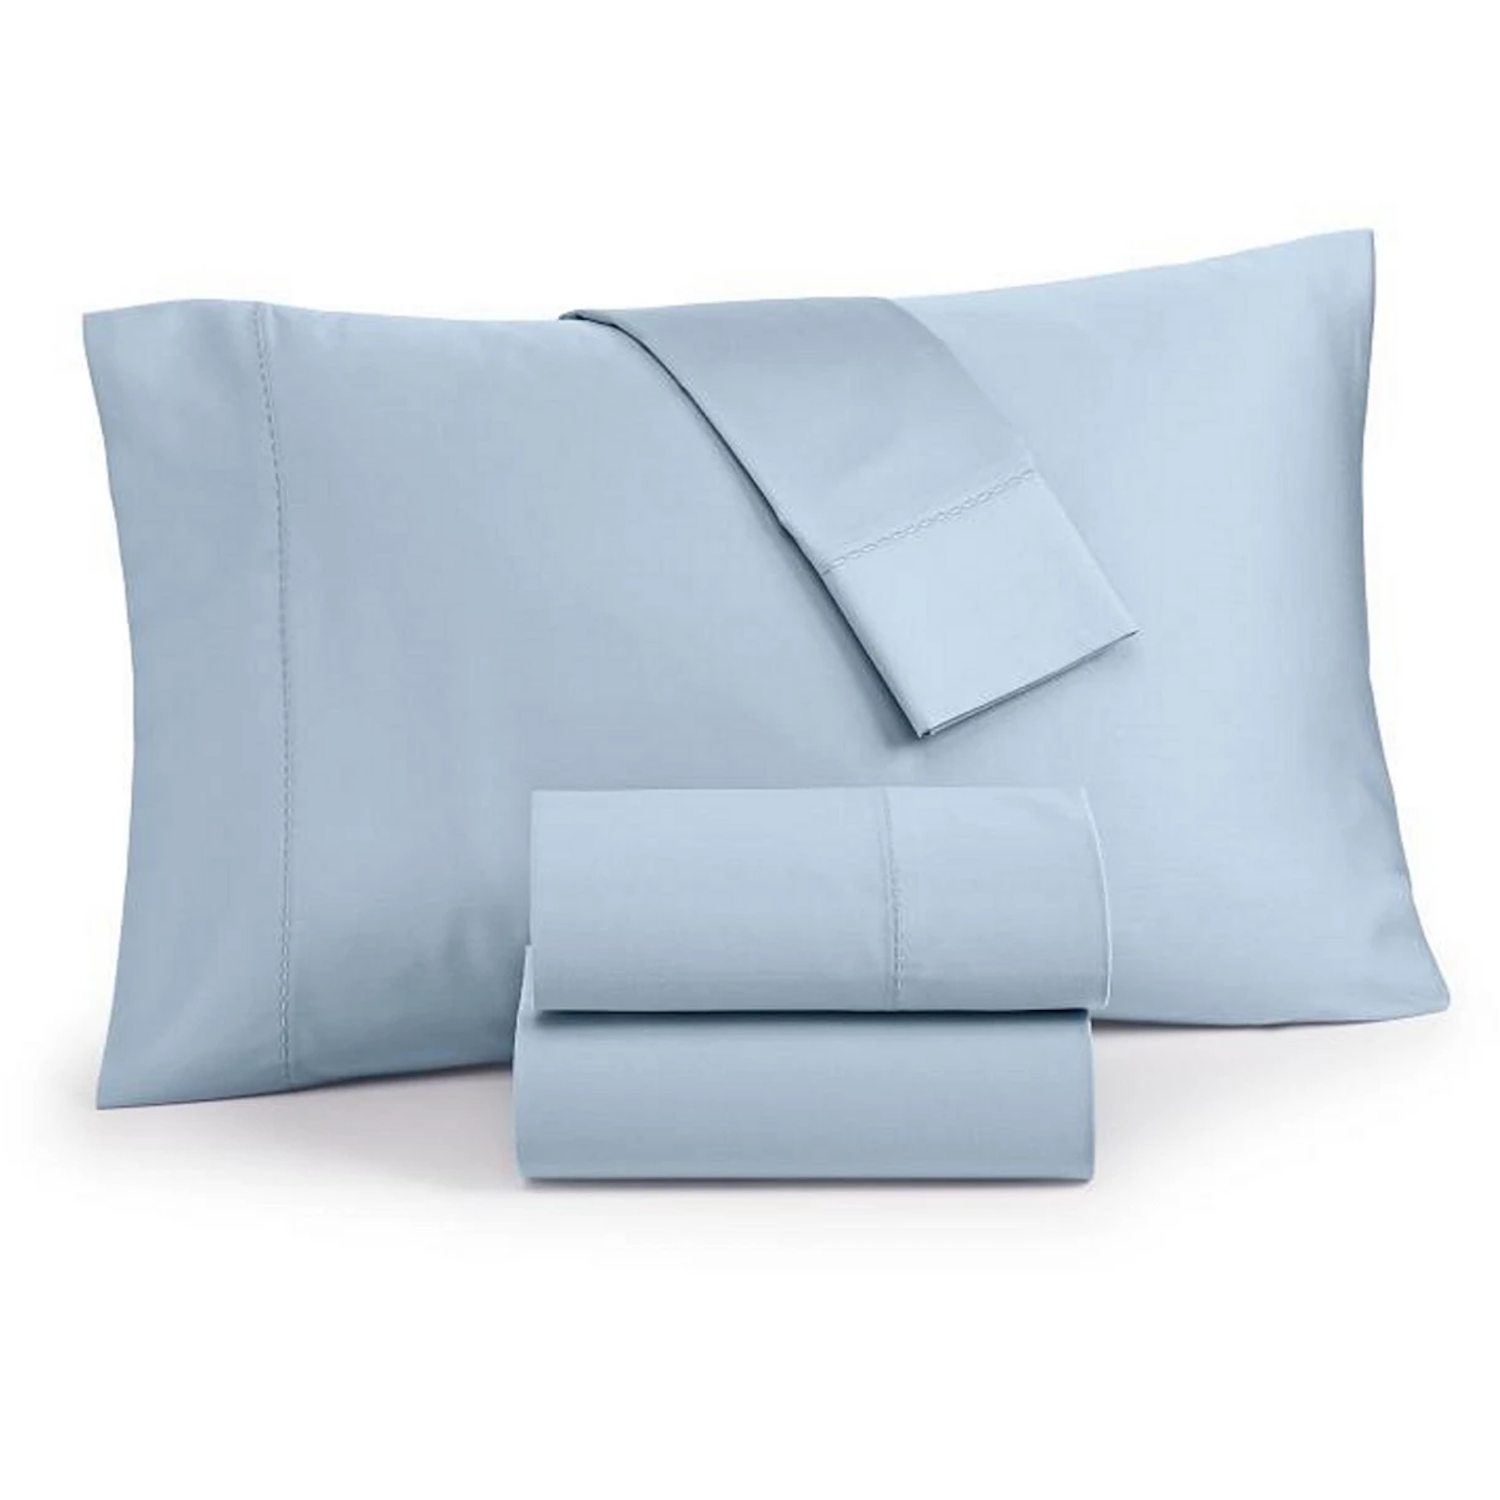 Hotel Collection Micro Cotton® 500 Thread Count Sheet Set, King, Created for Macy's